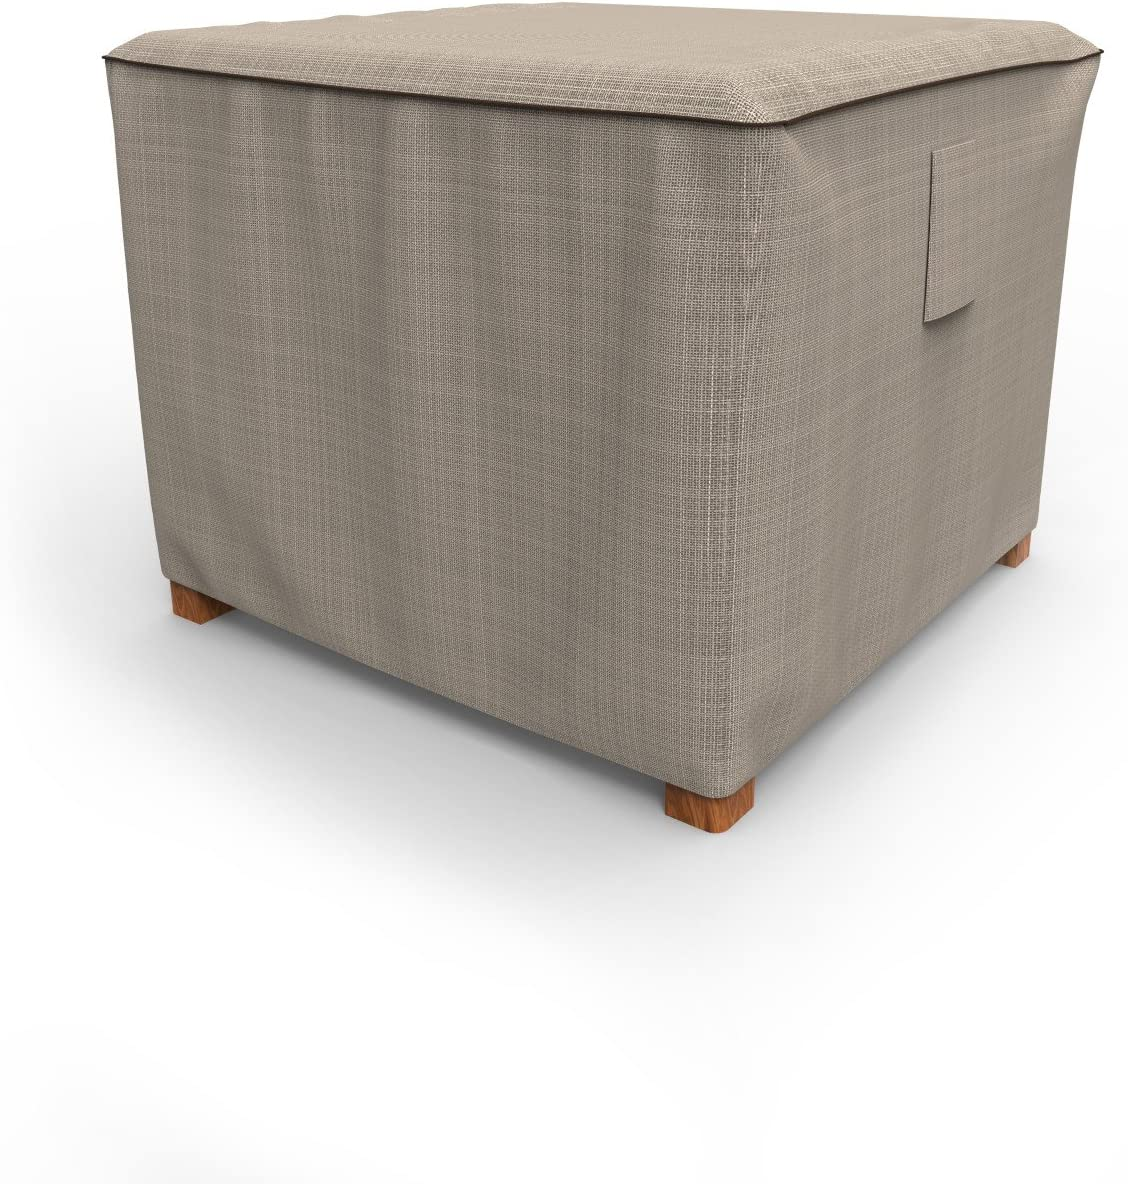 Budge P4A05PM1 English Garden New product!! Square Ottoman Patio Table Cover Be super welcome H